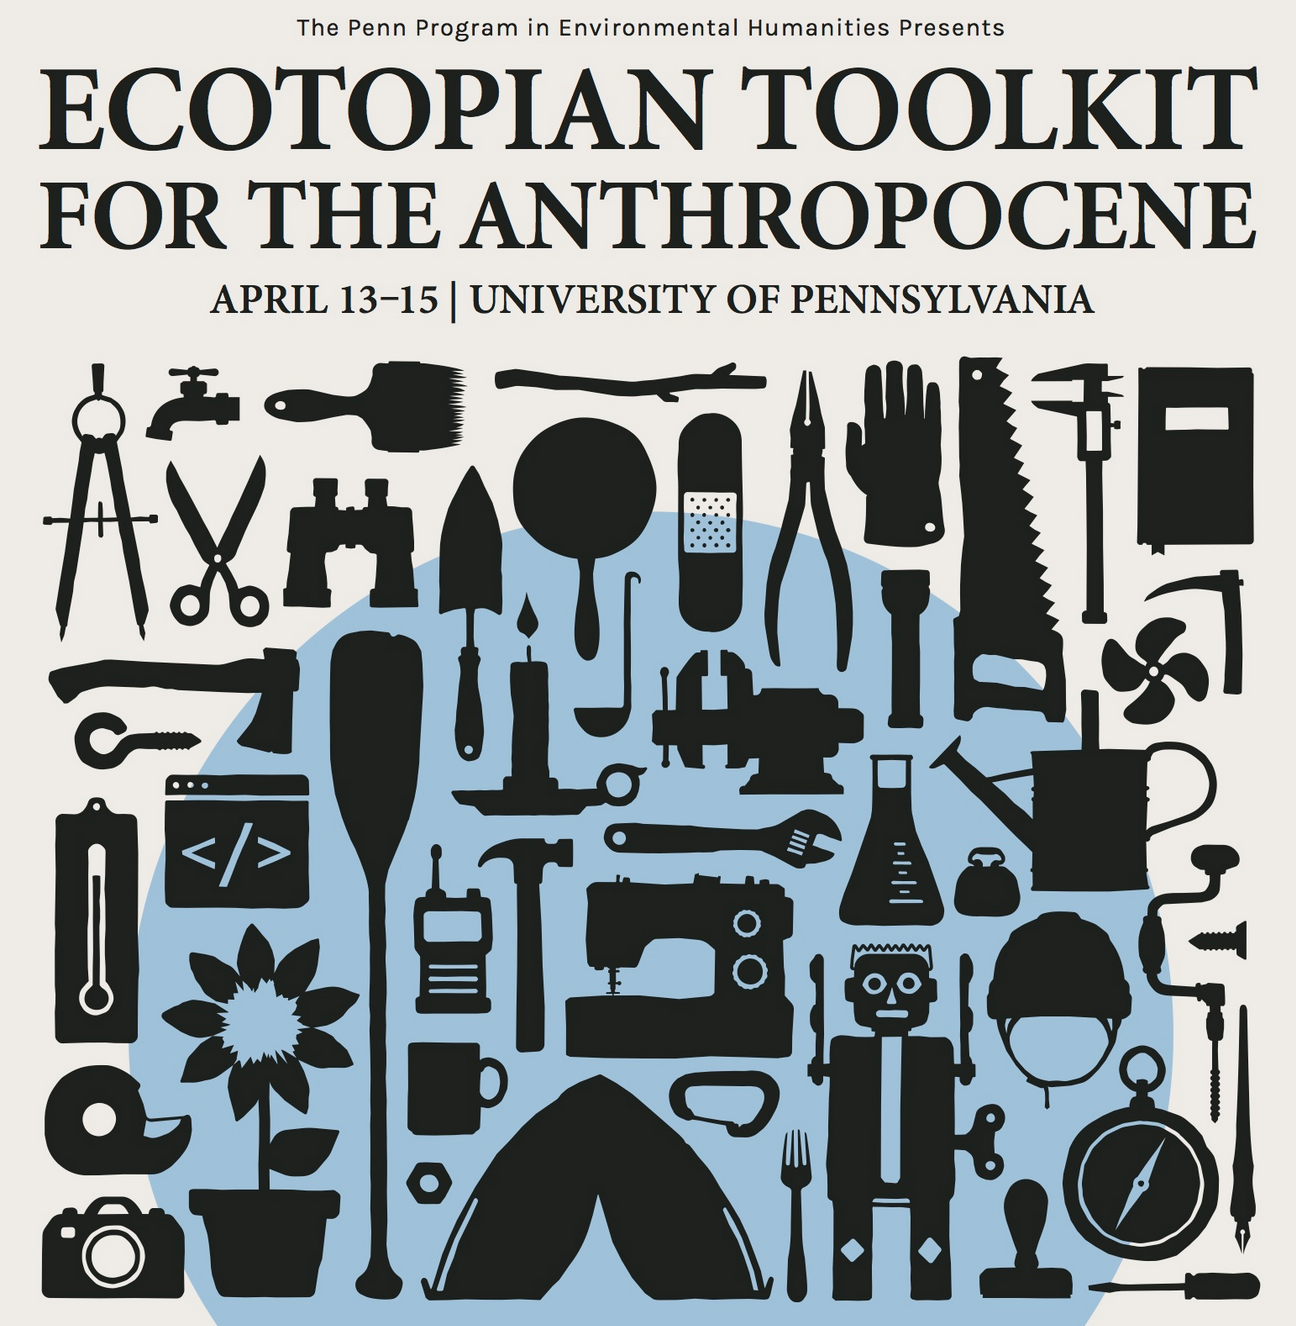 Ecotopian Toolkit for the Anthropocene Conference,University of Pennsylvania, April, 2017 - >> Read More